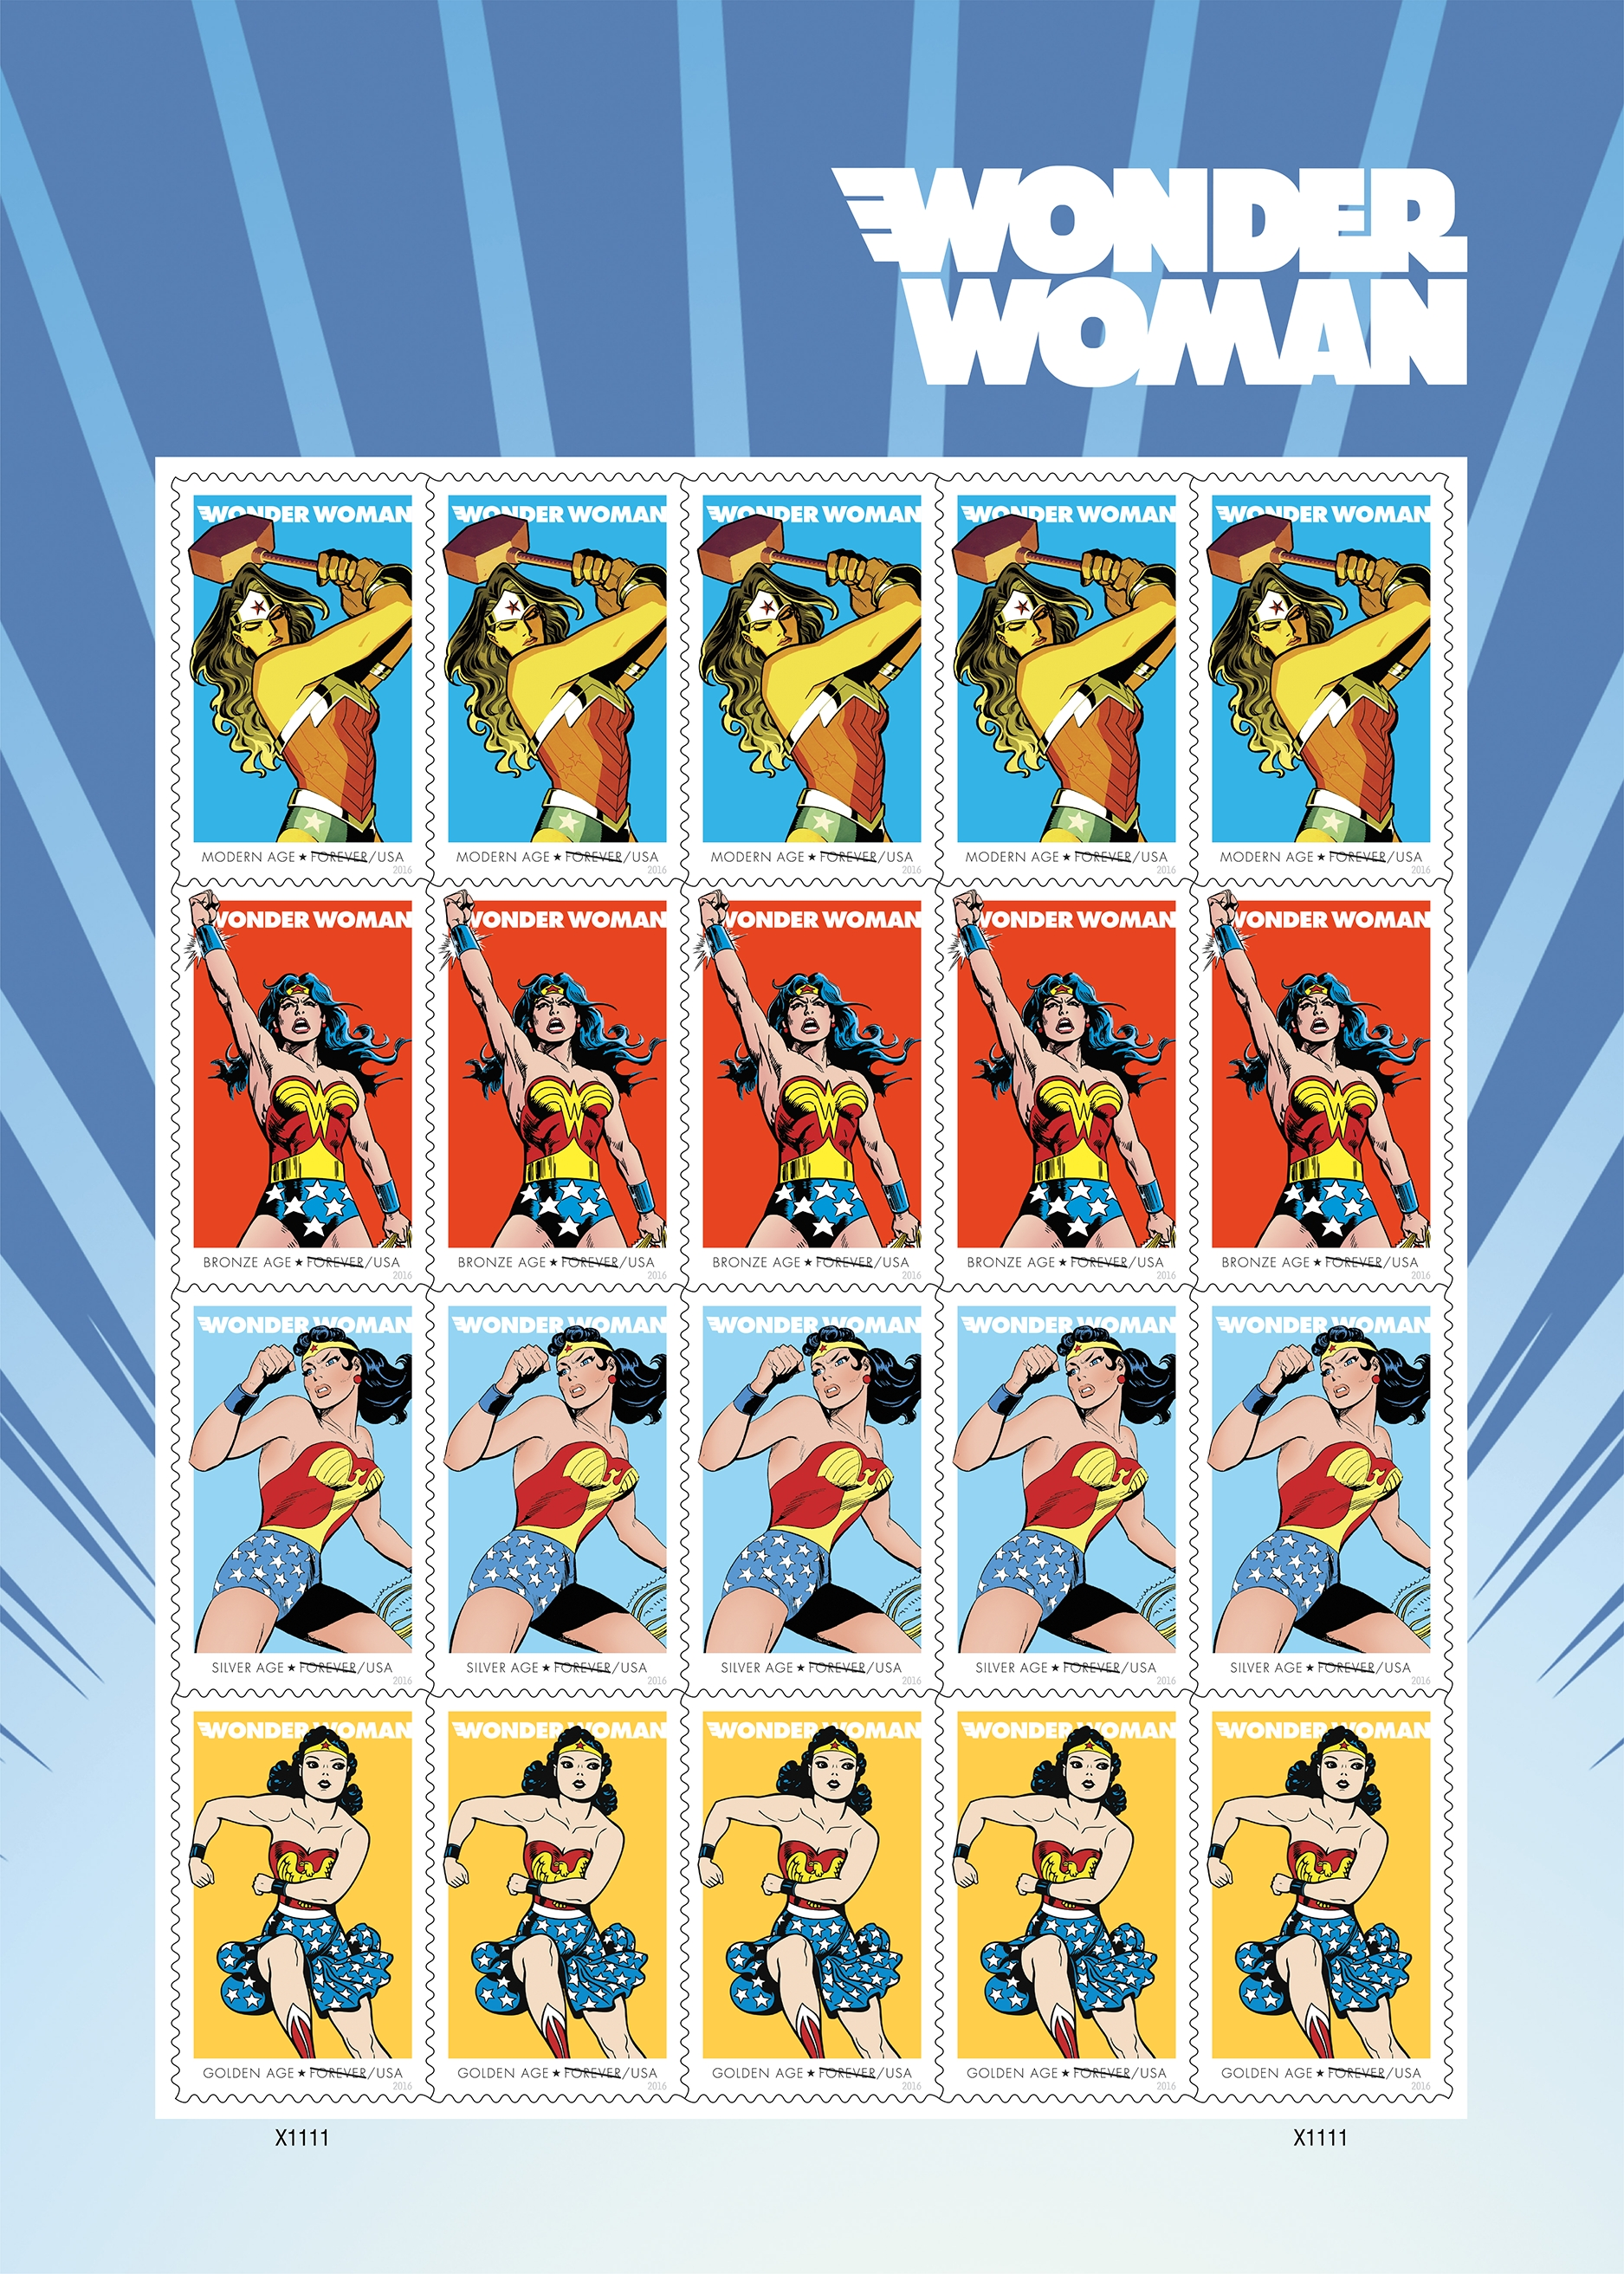 The U.S. Postal Service revealed its newest Wonder Woman stamps The U.S. Postal Service revealed its newest Wonder Woman stamps in honor of the superhero's 75th anniversary on July 21, 2016 in honor of the superhero's 75th anniversary.